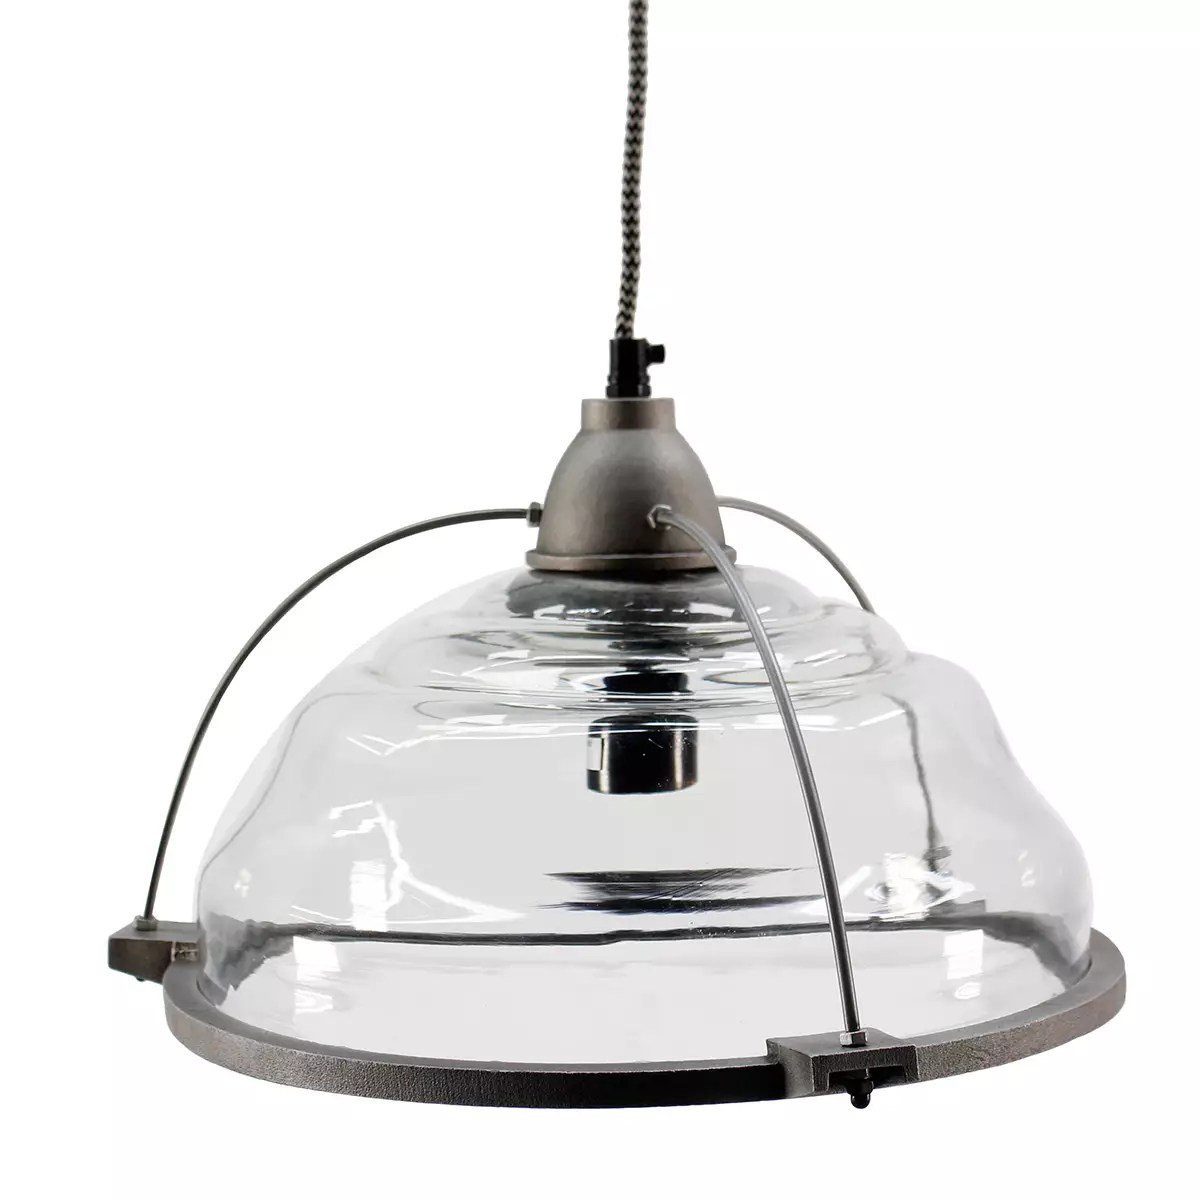 Lampe Suspension Style Industriel Lampe Suspendu Style Industriel